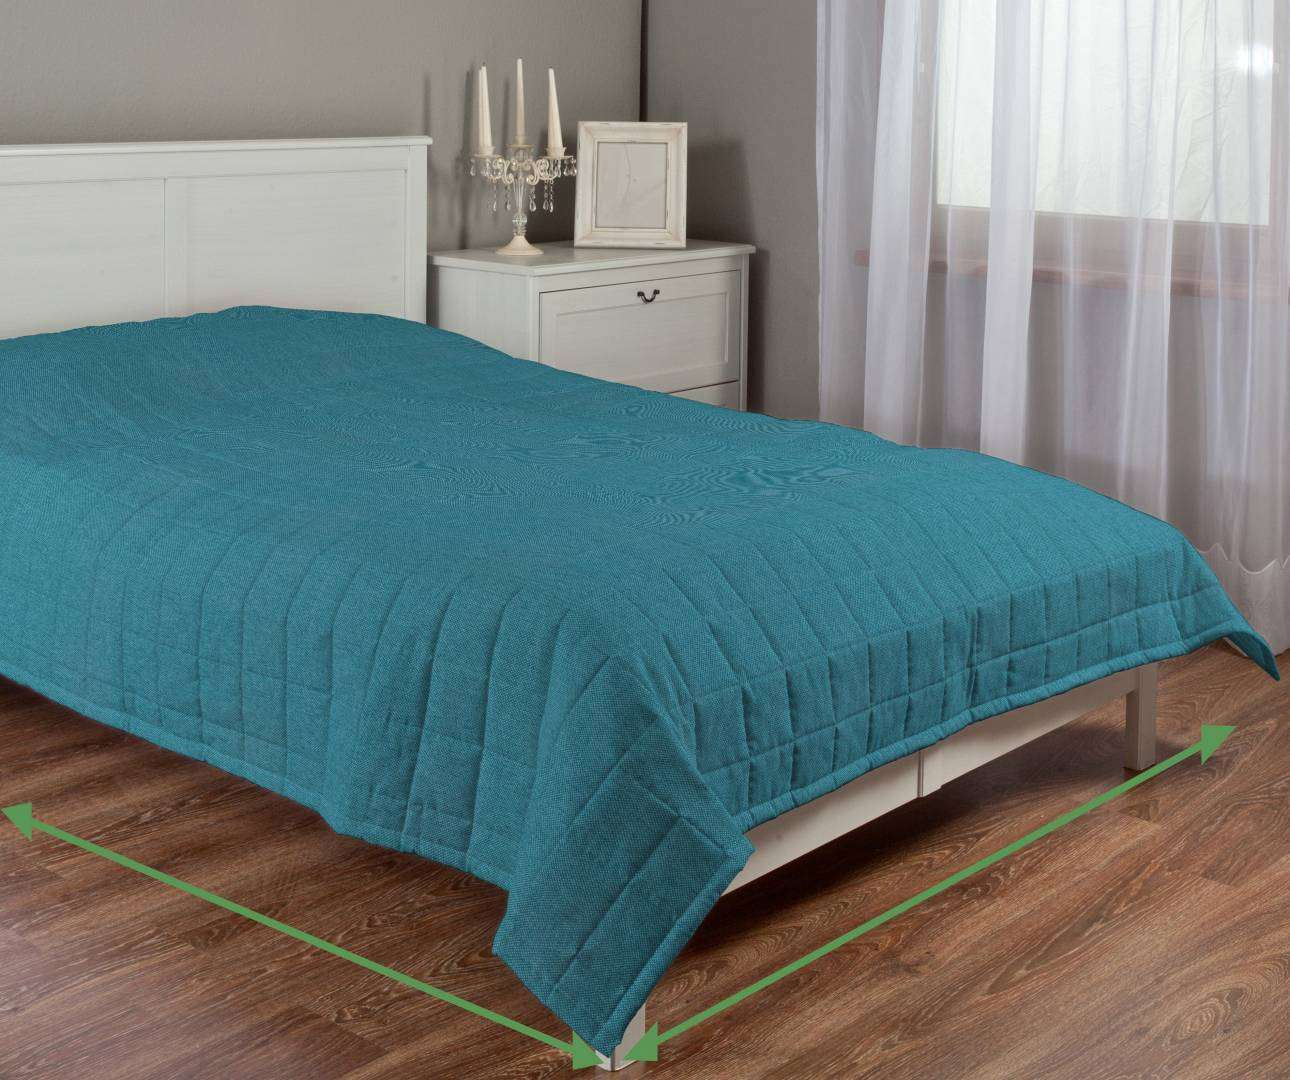 Quilted throw (check quilt pattern) in collection Etna, fabric: 705-16